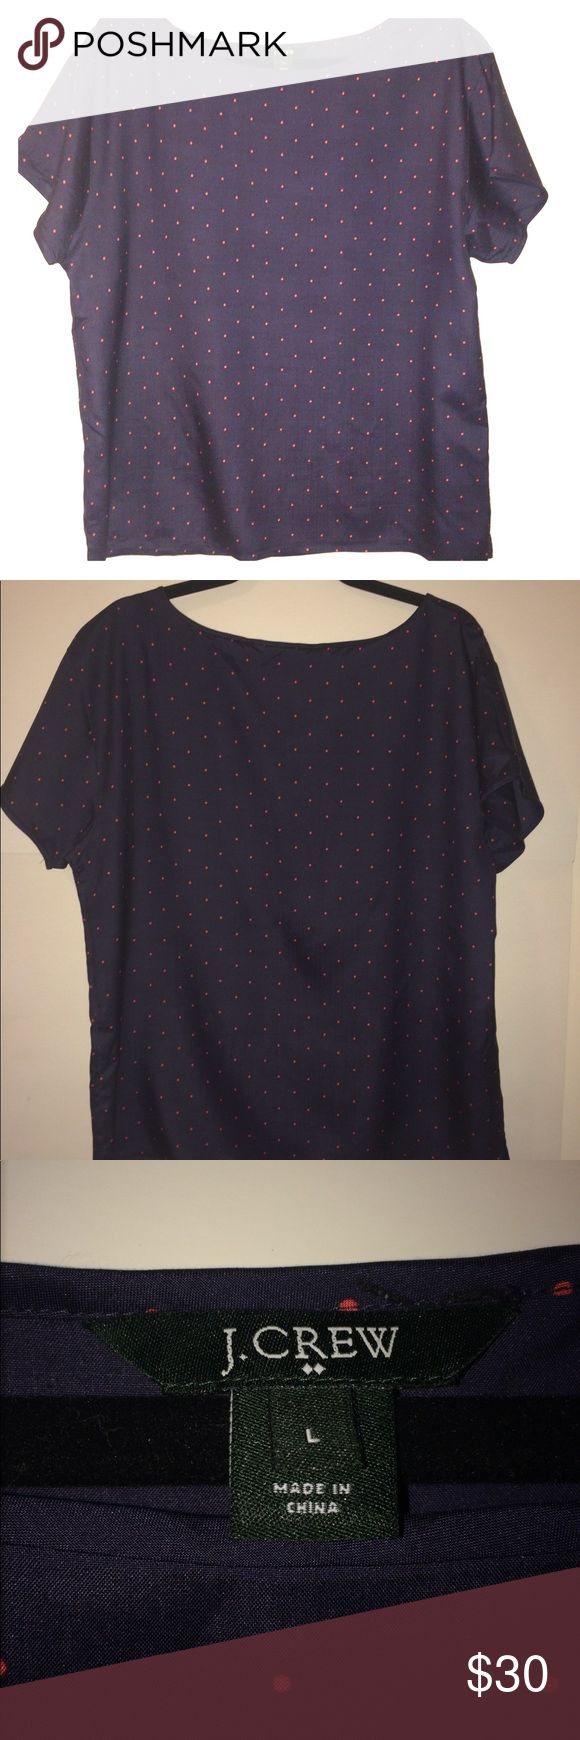 J. Crew Factory Printed Washed Silk Tee Super cute navy top with pink polka-dots. Loose fit with side slits at hem. 100% silk. Located in a smoke free home. Excellent condition. J.Crew Factory Tops Tees - Short Sleeve